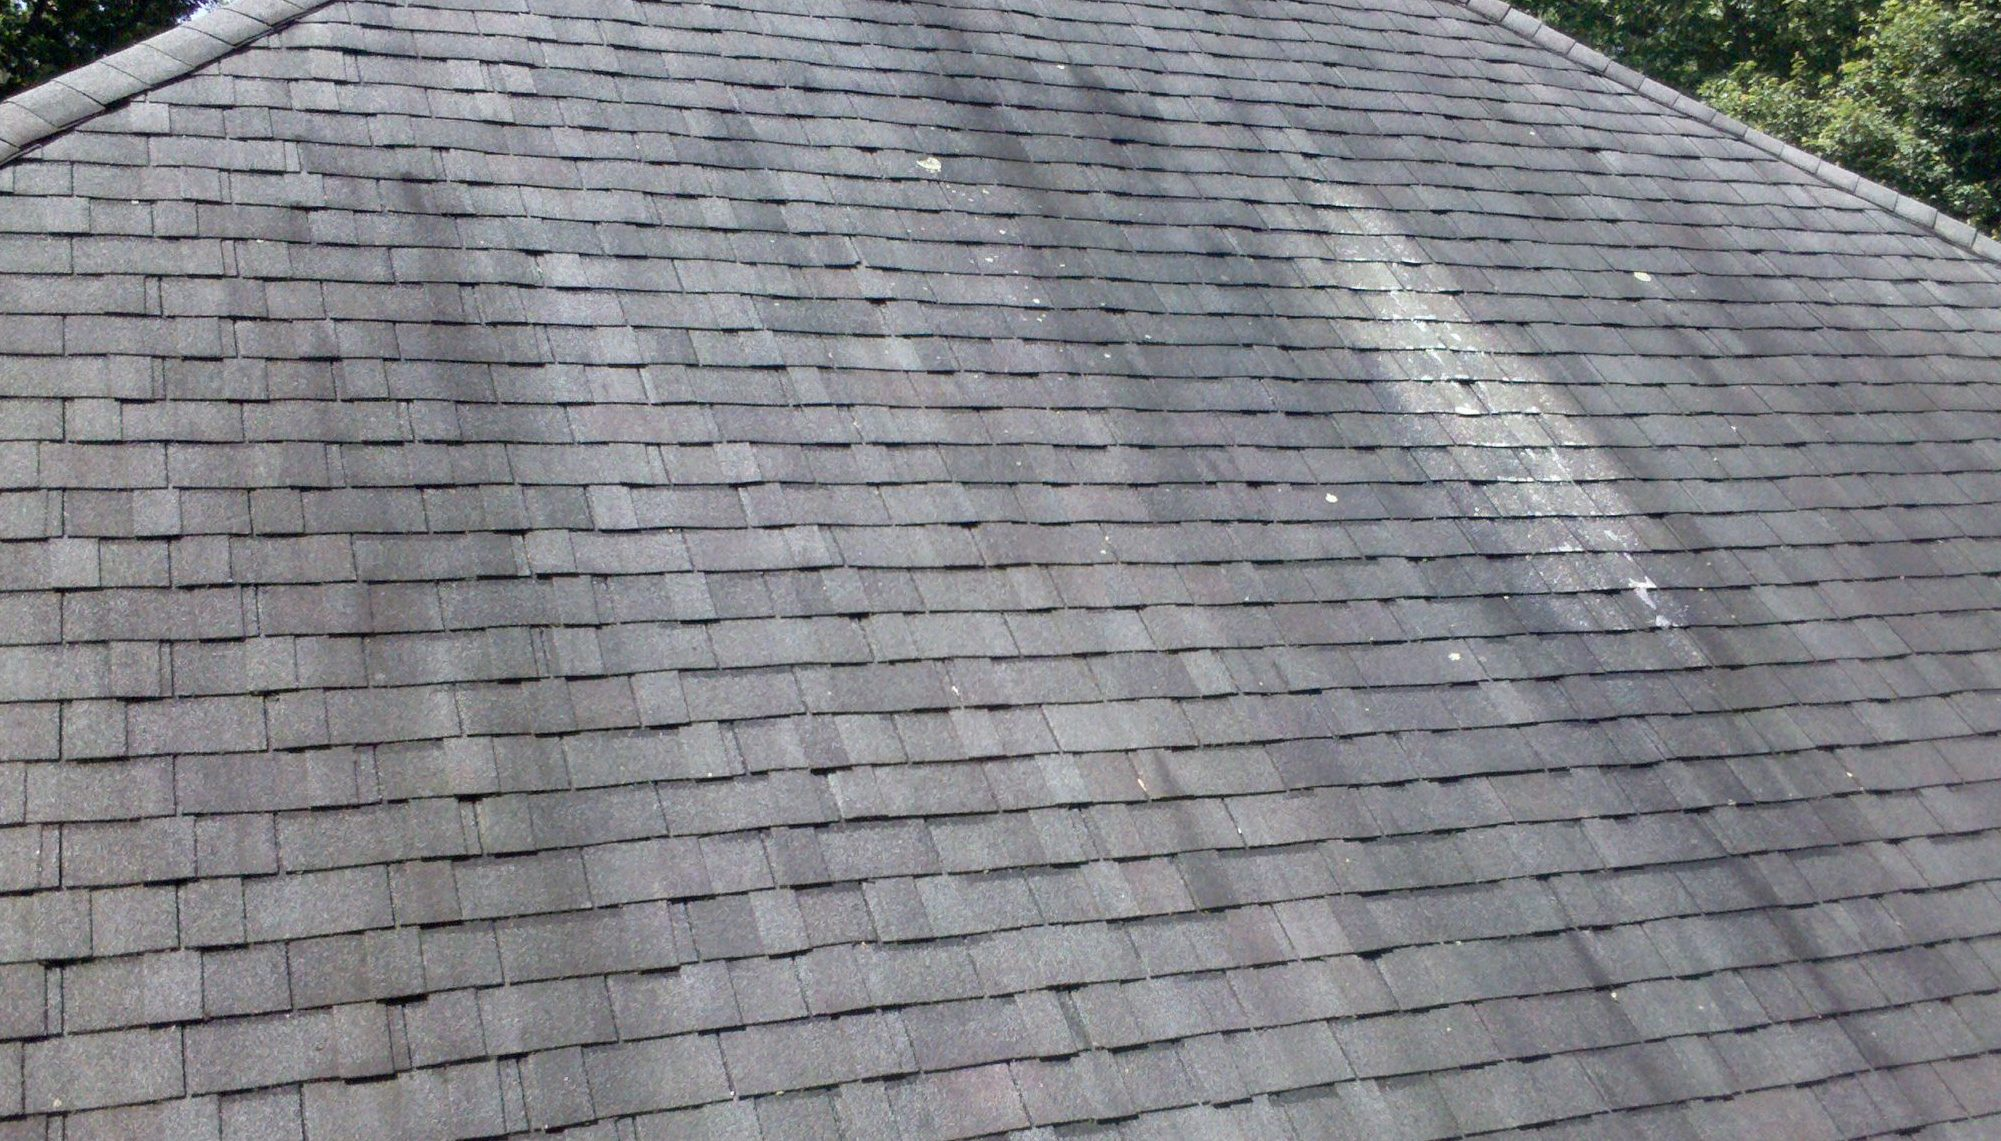 gray roof stained with algae